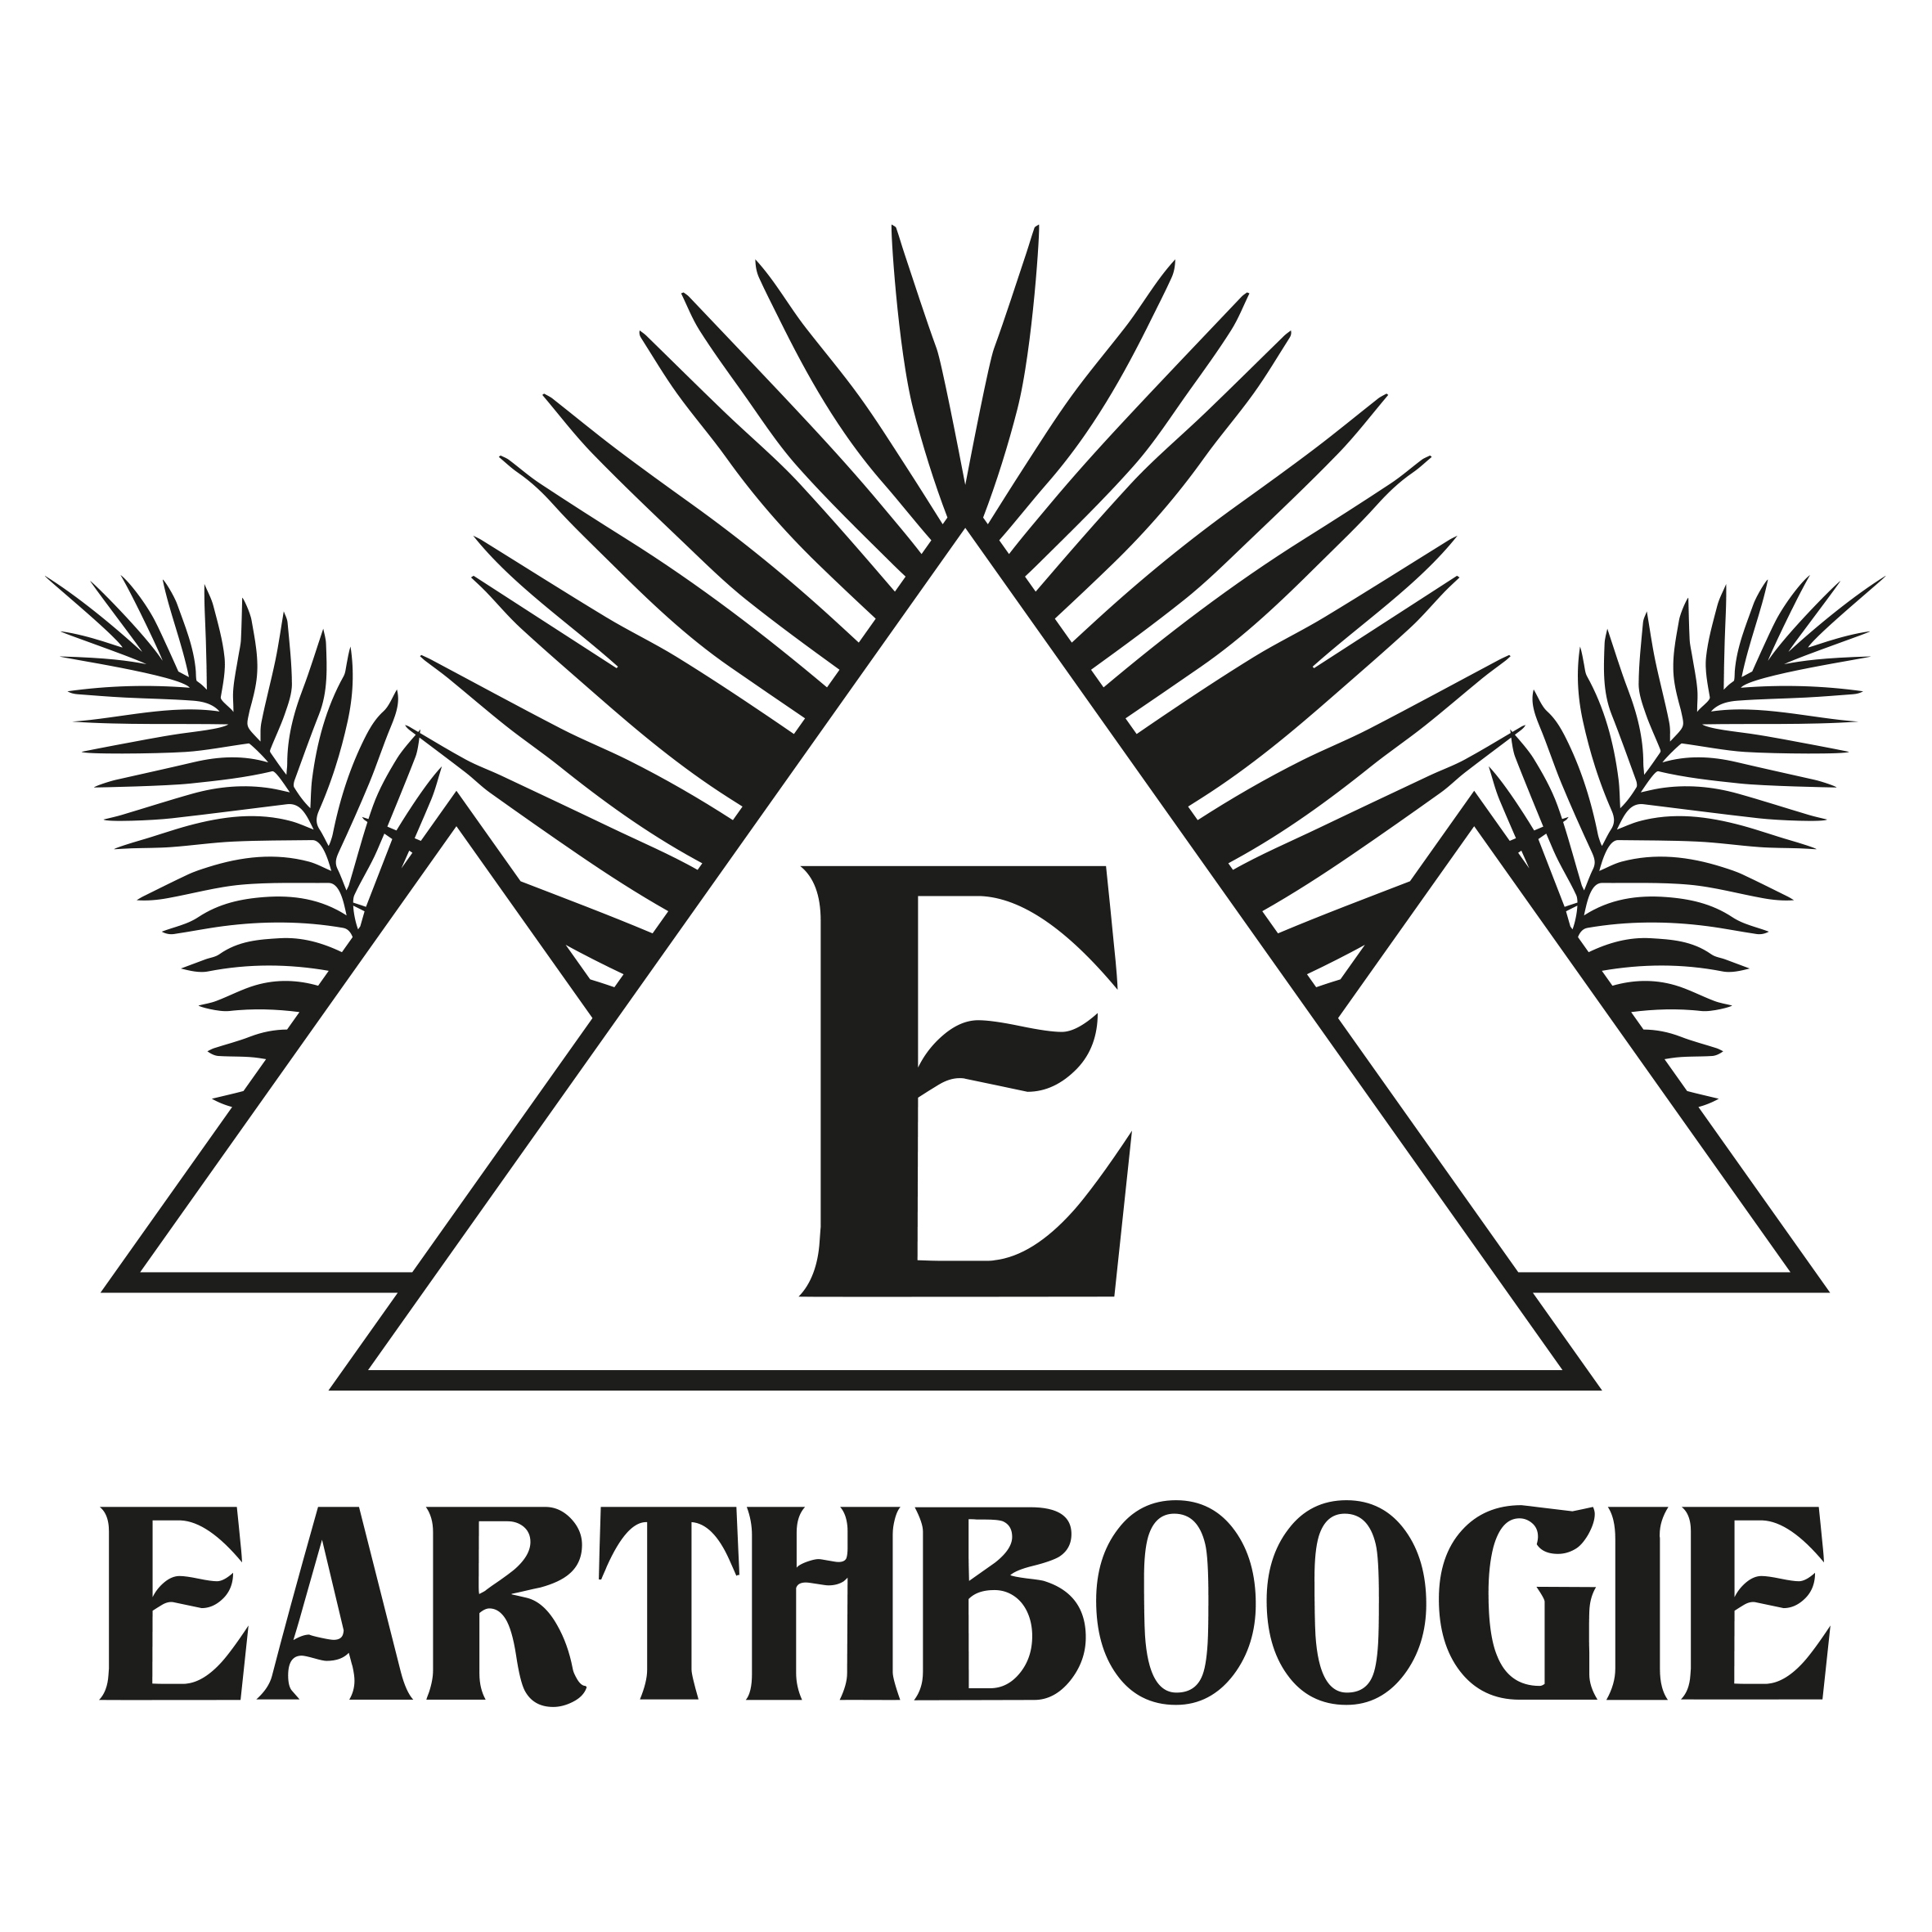 Earthboogie